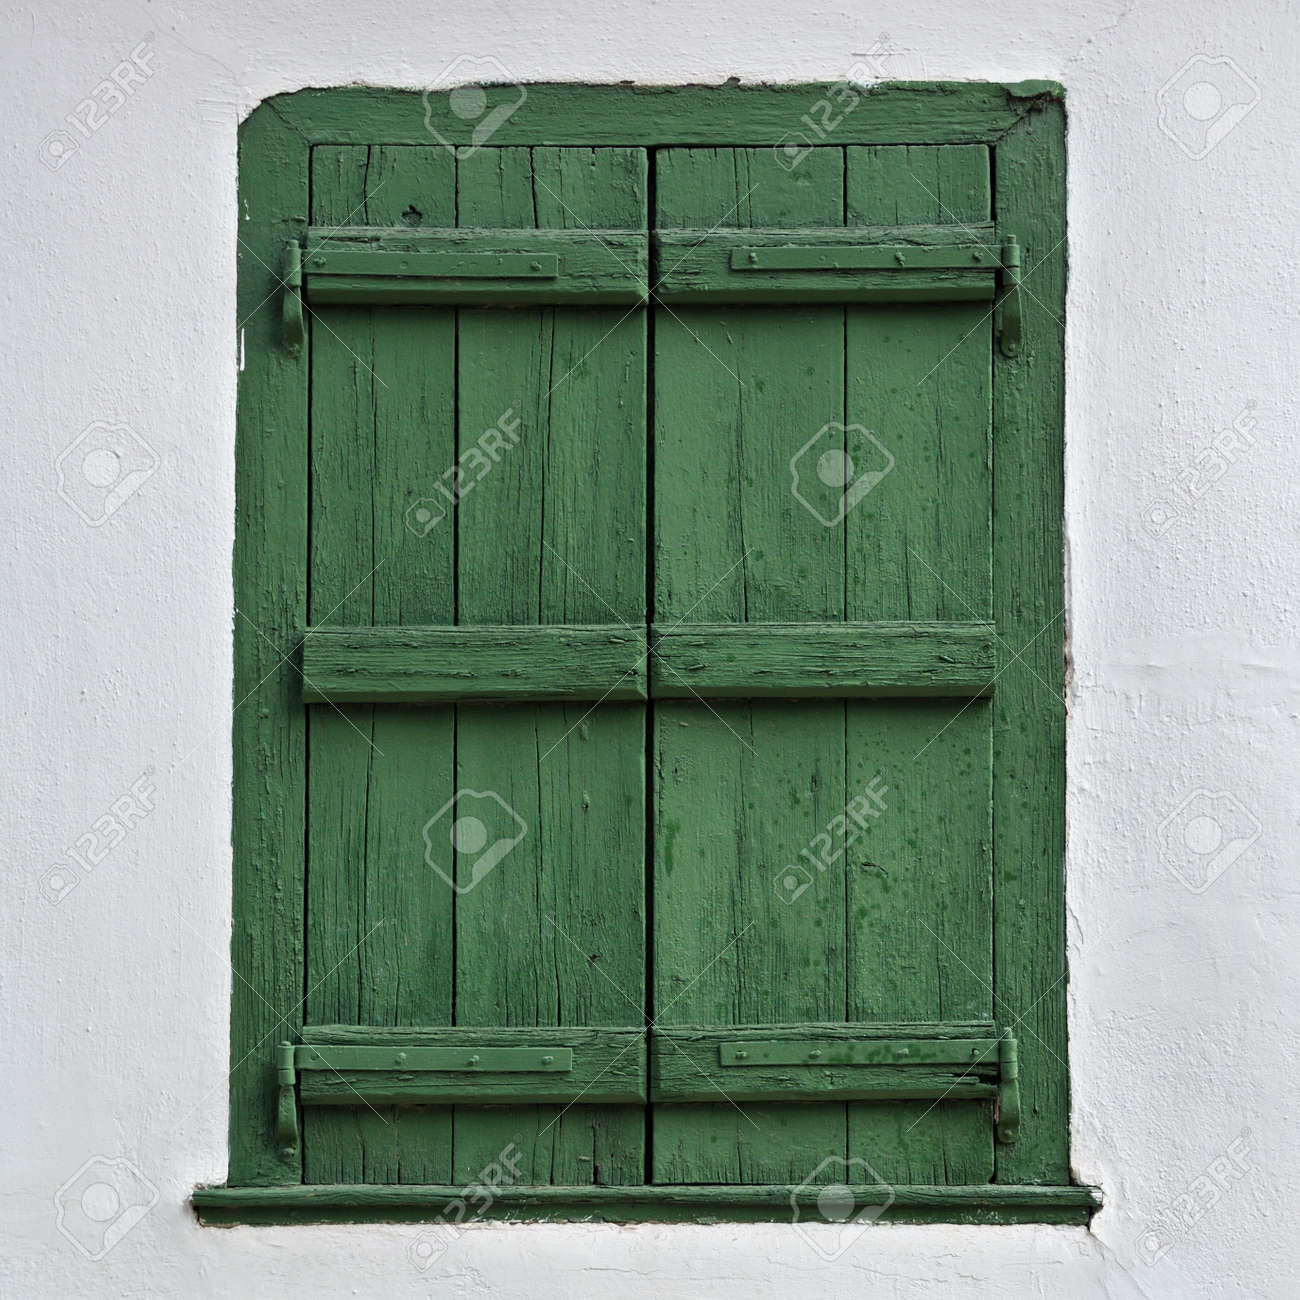 Green wooden window shutter and white wall. Stock Photo - 8553992